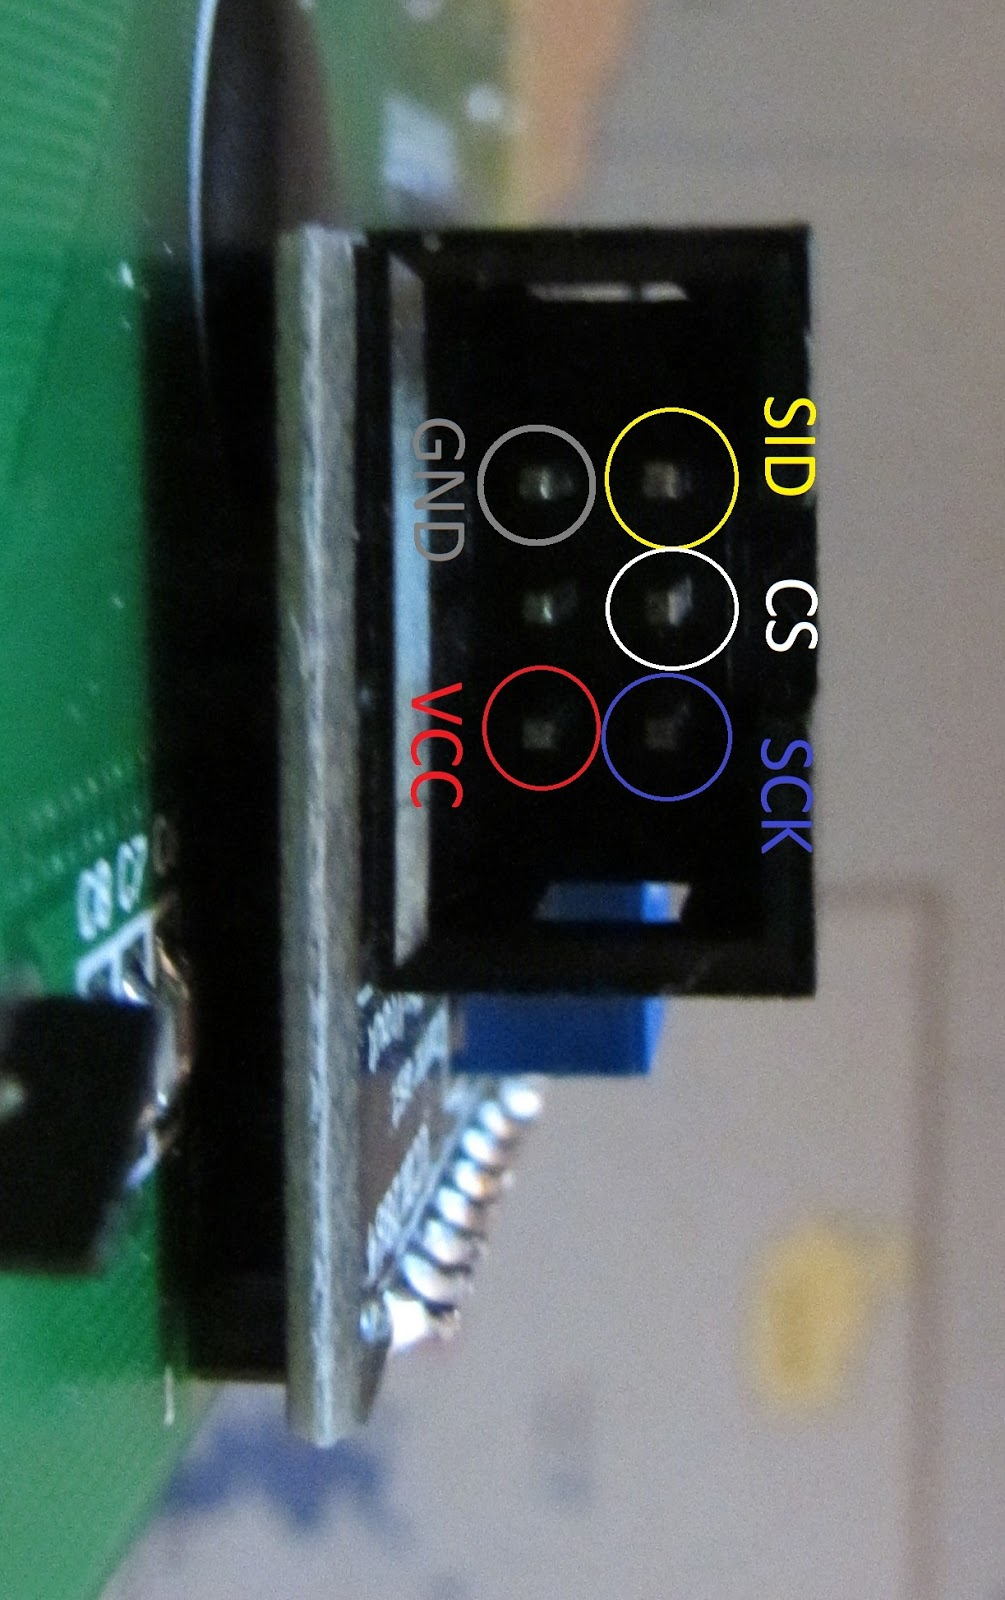 Ben's IT Blog: Connect and use a Sainsmart LCD12864 (ST7920